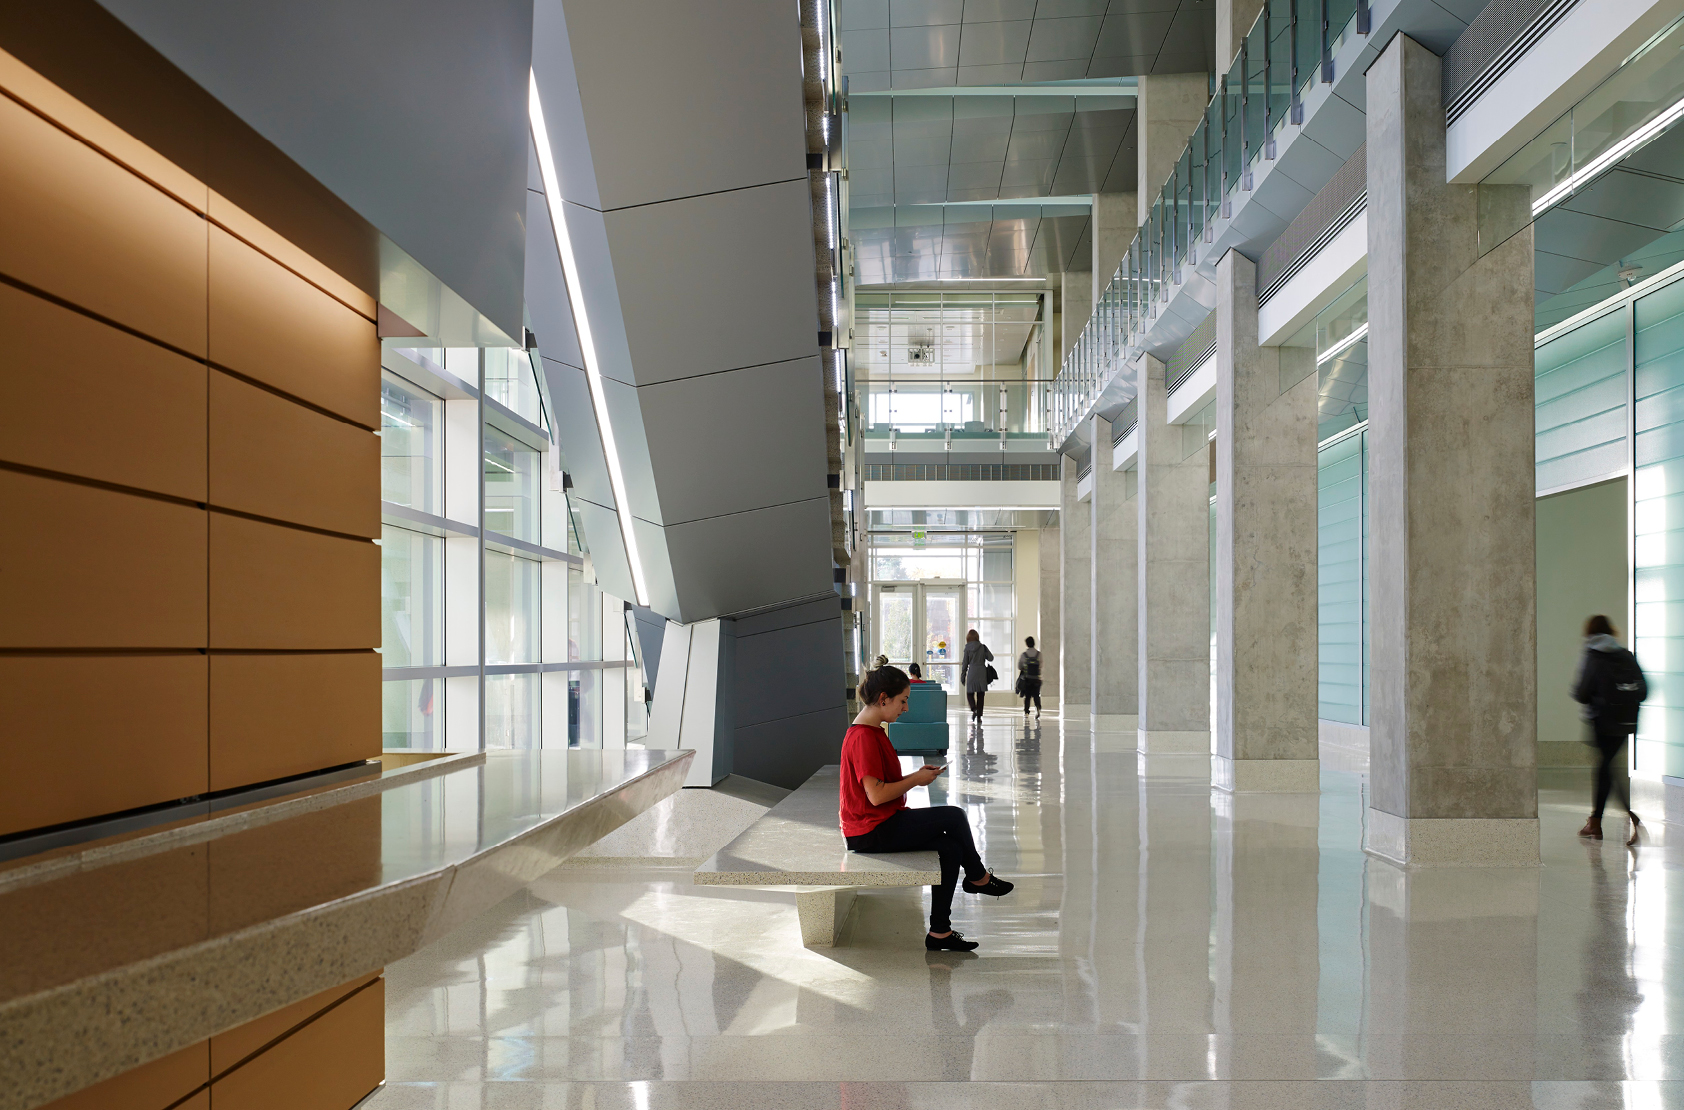 University of Wisconsin, Milwaukee - Kenwood Interdisciplinary Research Center